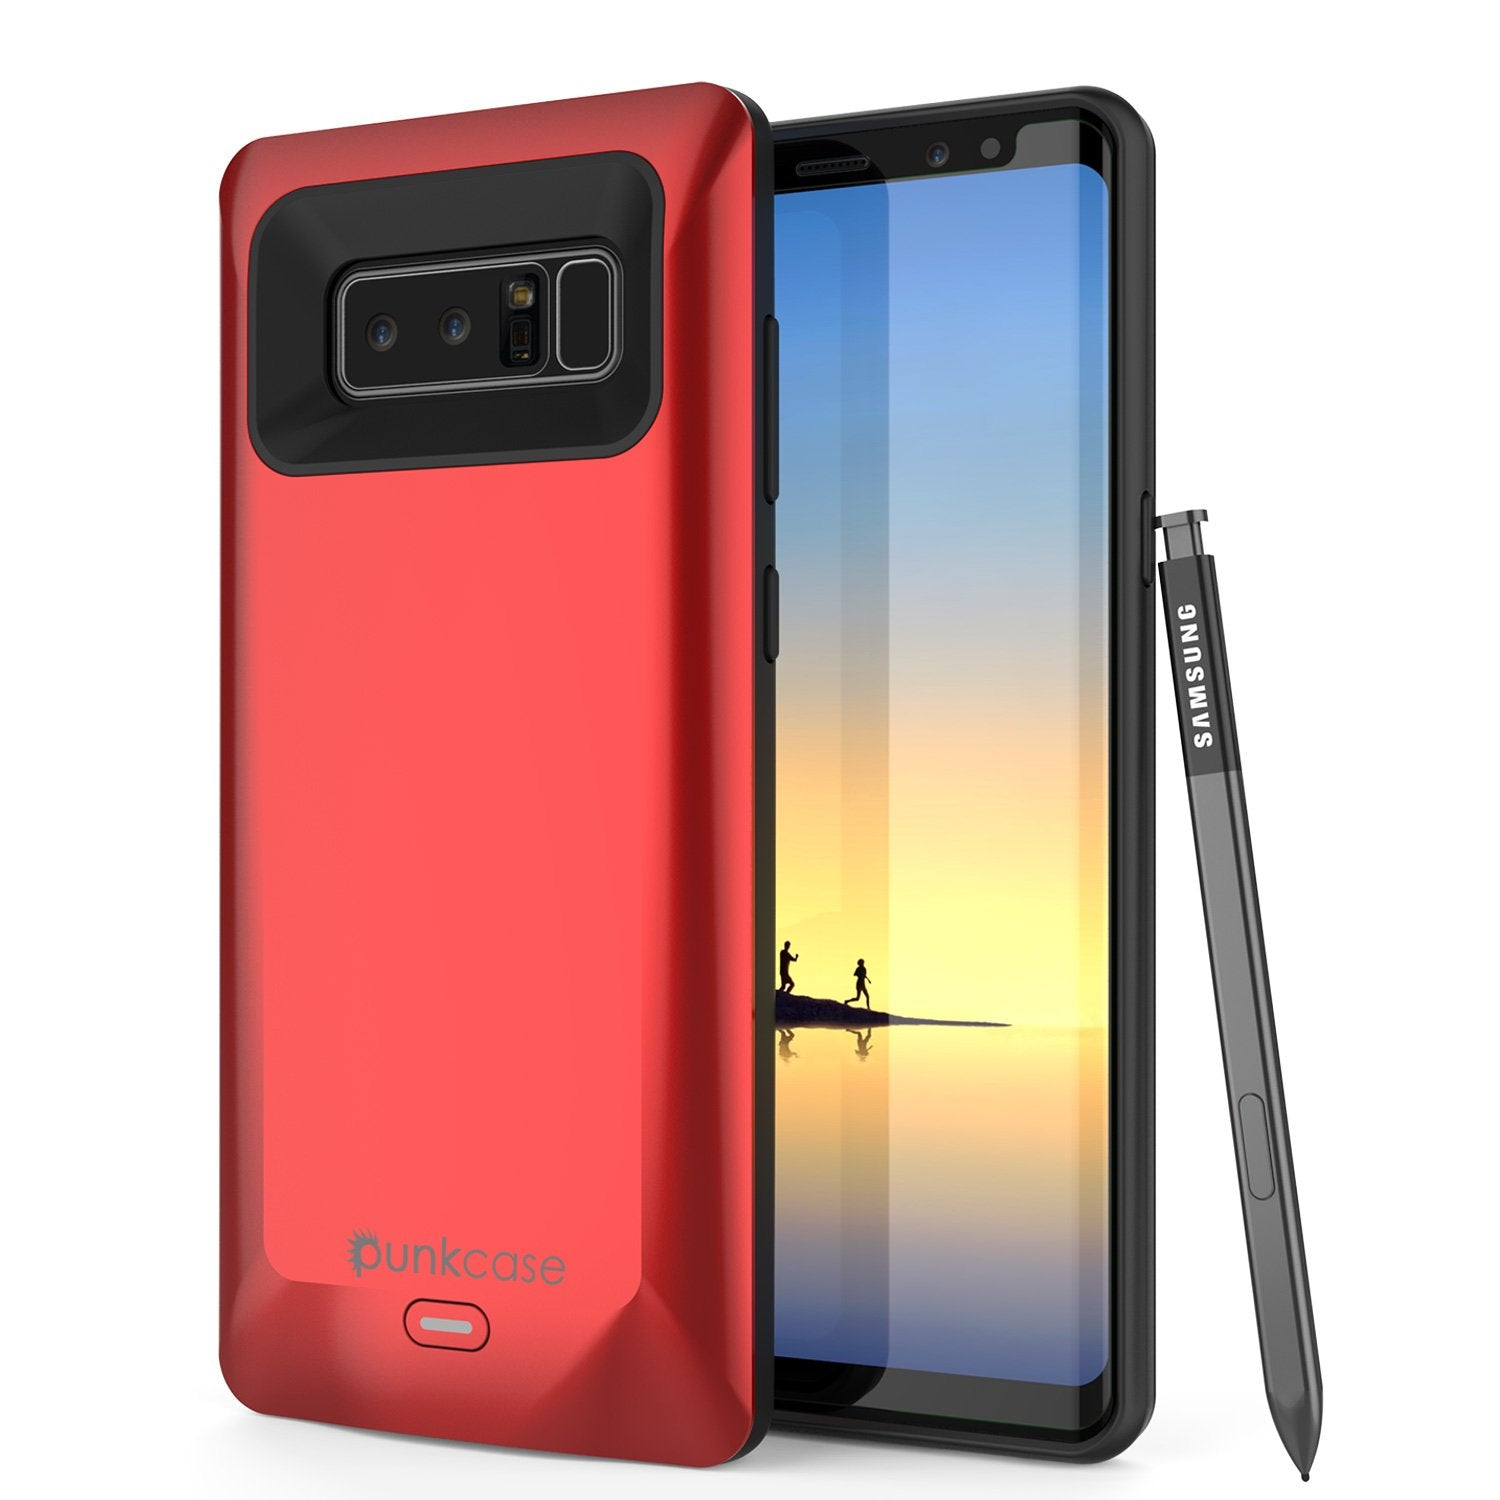 Galaxy Note 8 Battery PunkCase, 5000mAH Charger Case W/USB port, Blue